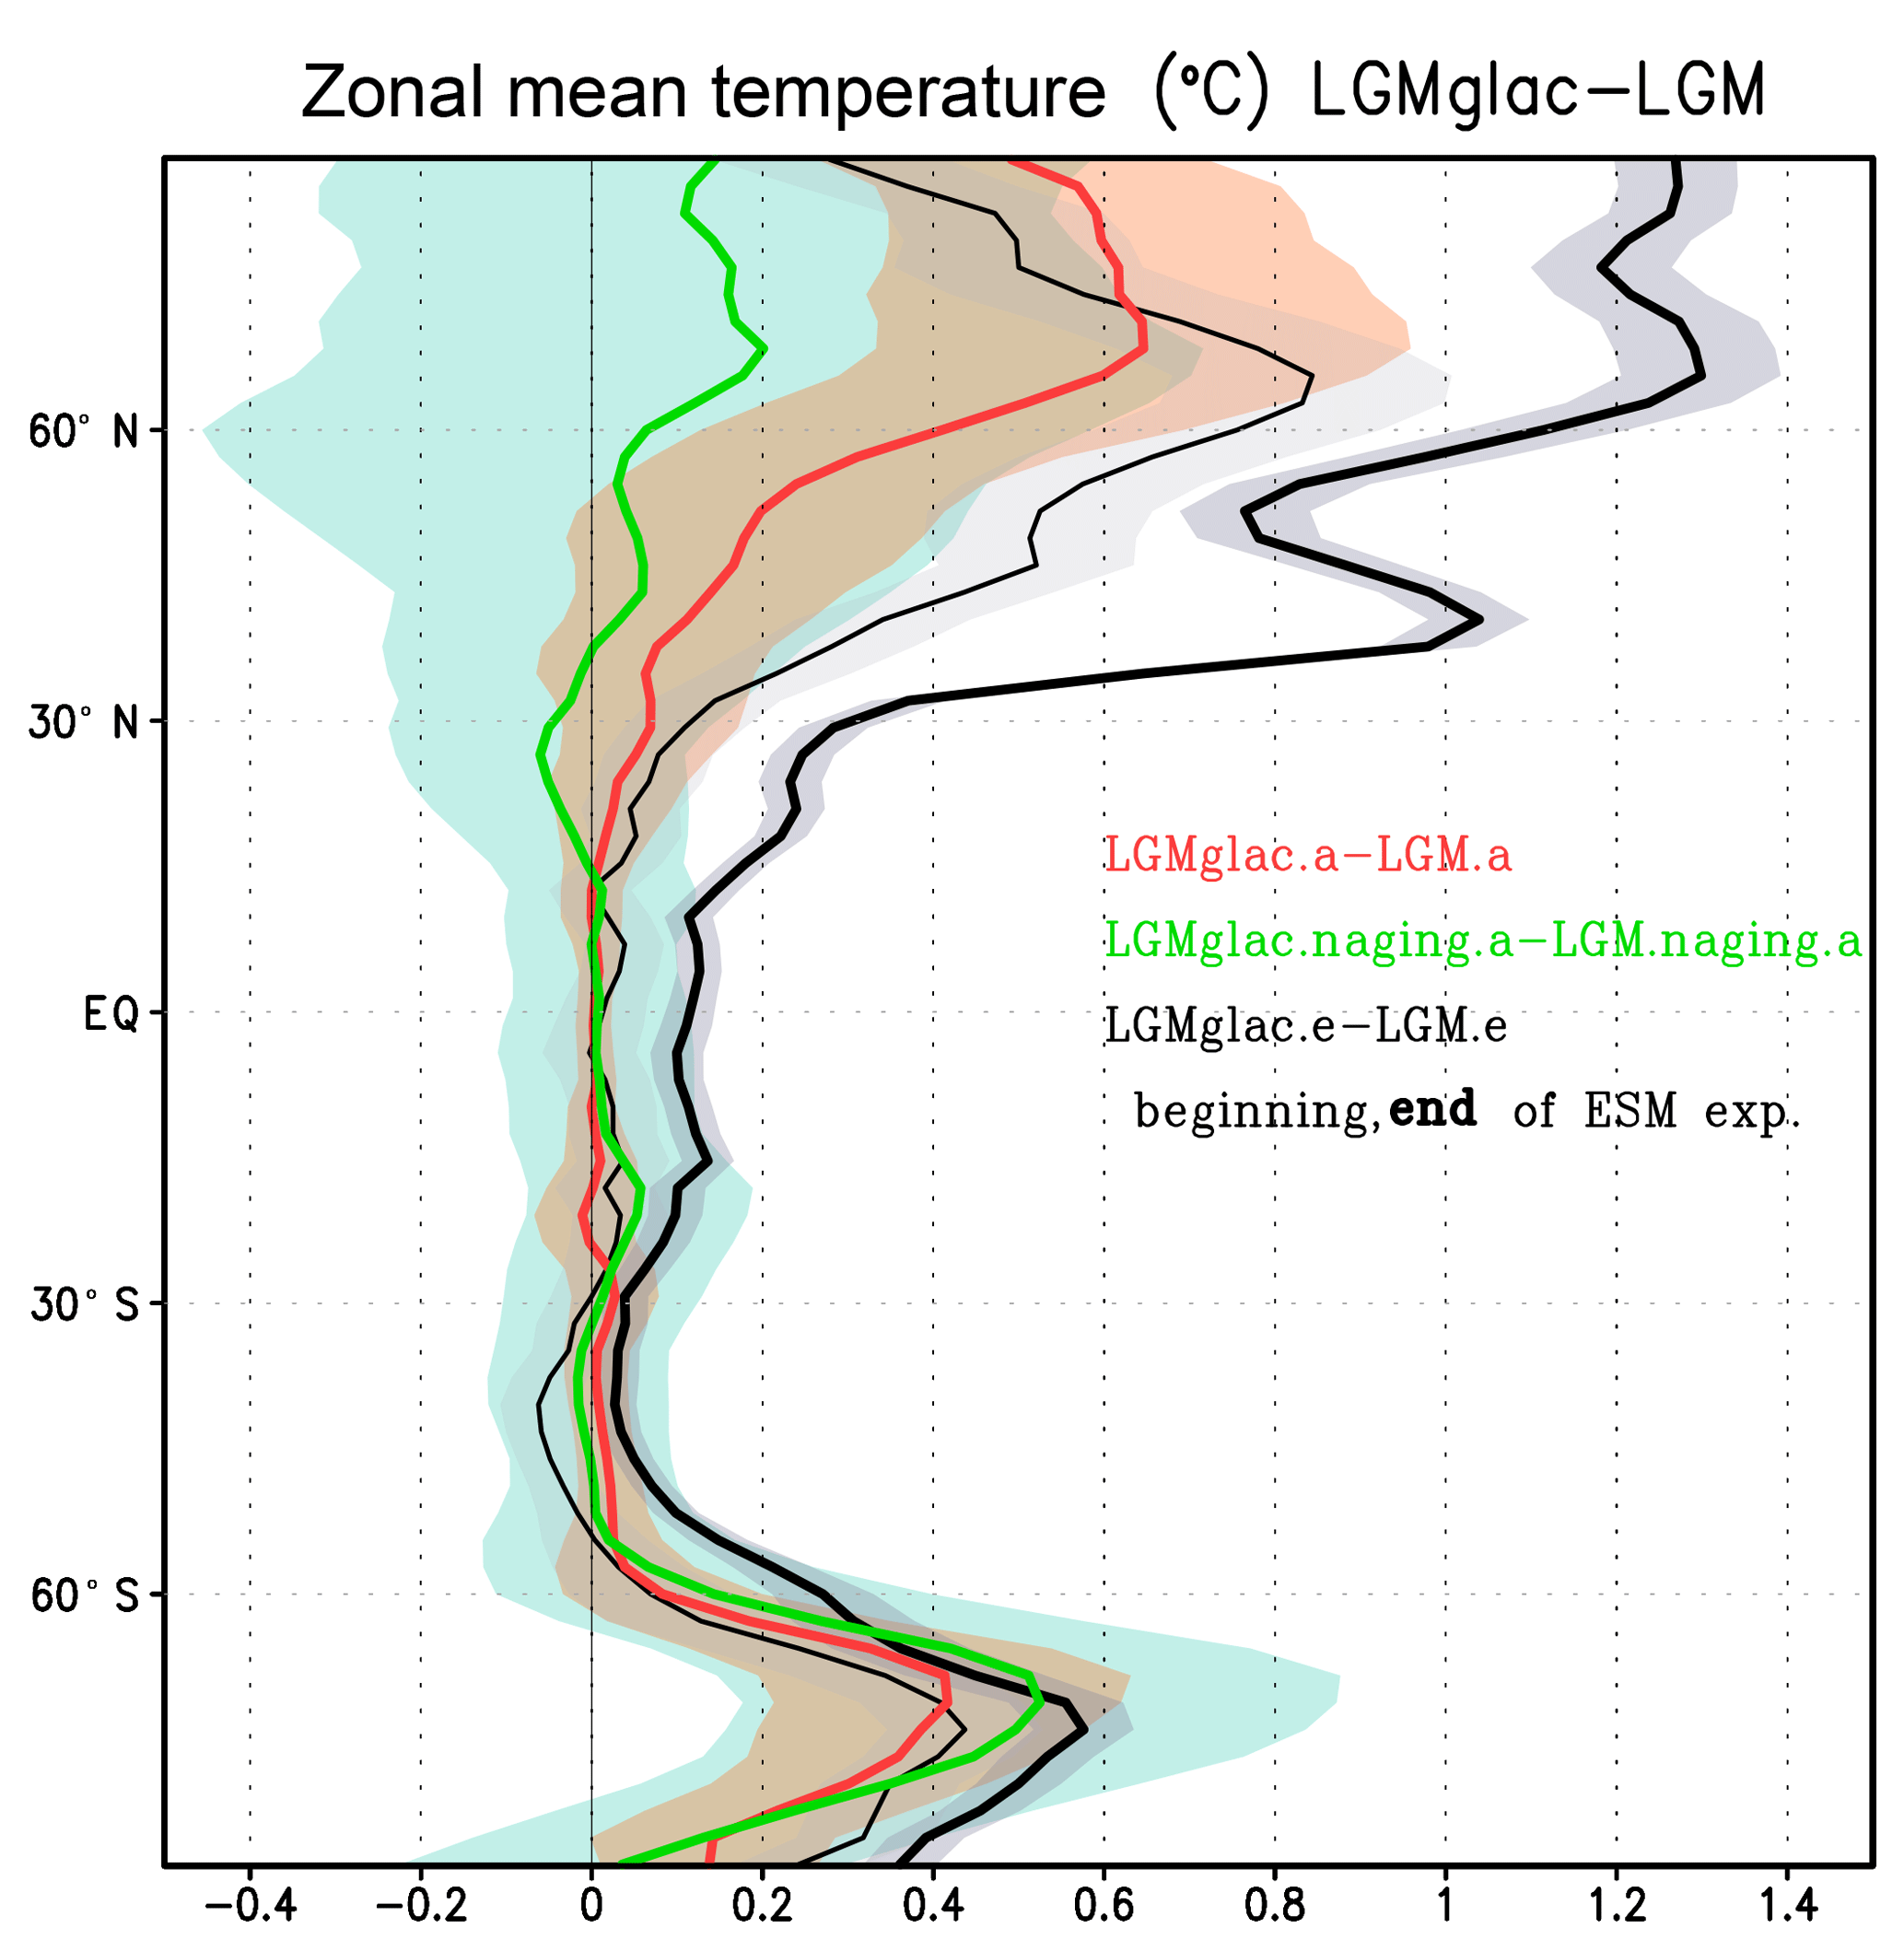 CP - Effect of high dust amount on surface temperature